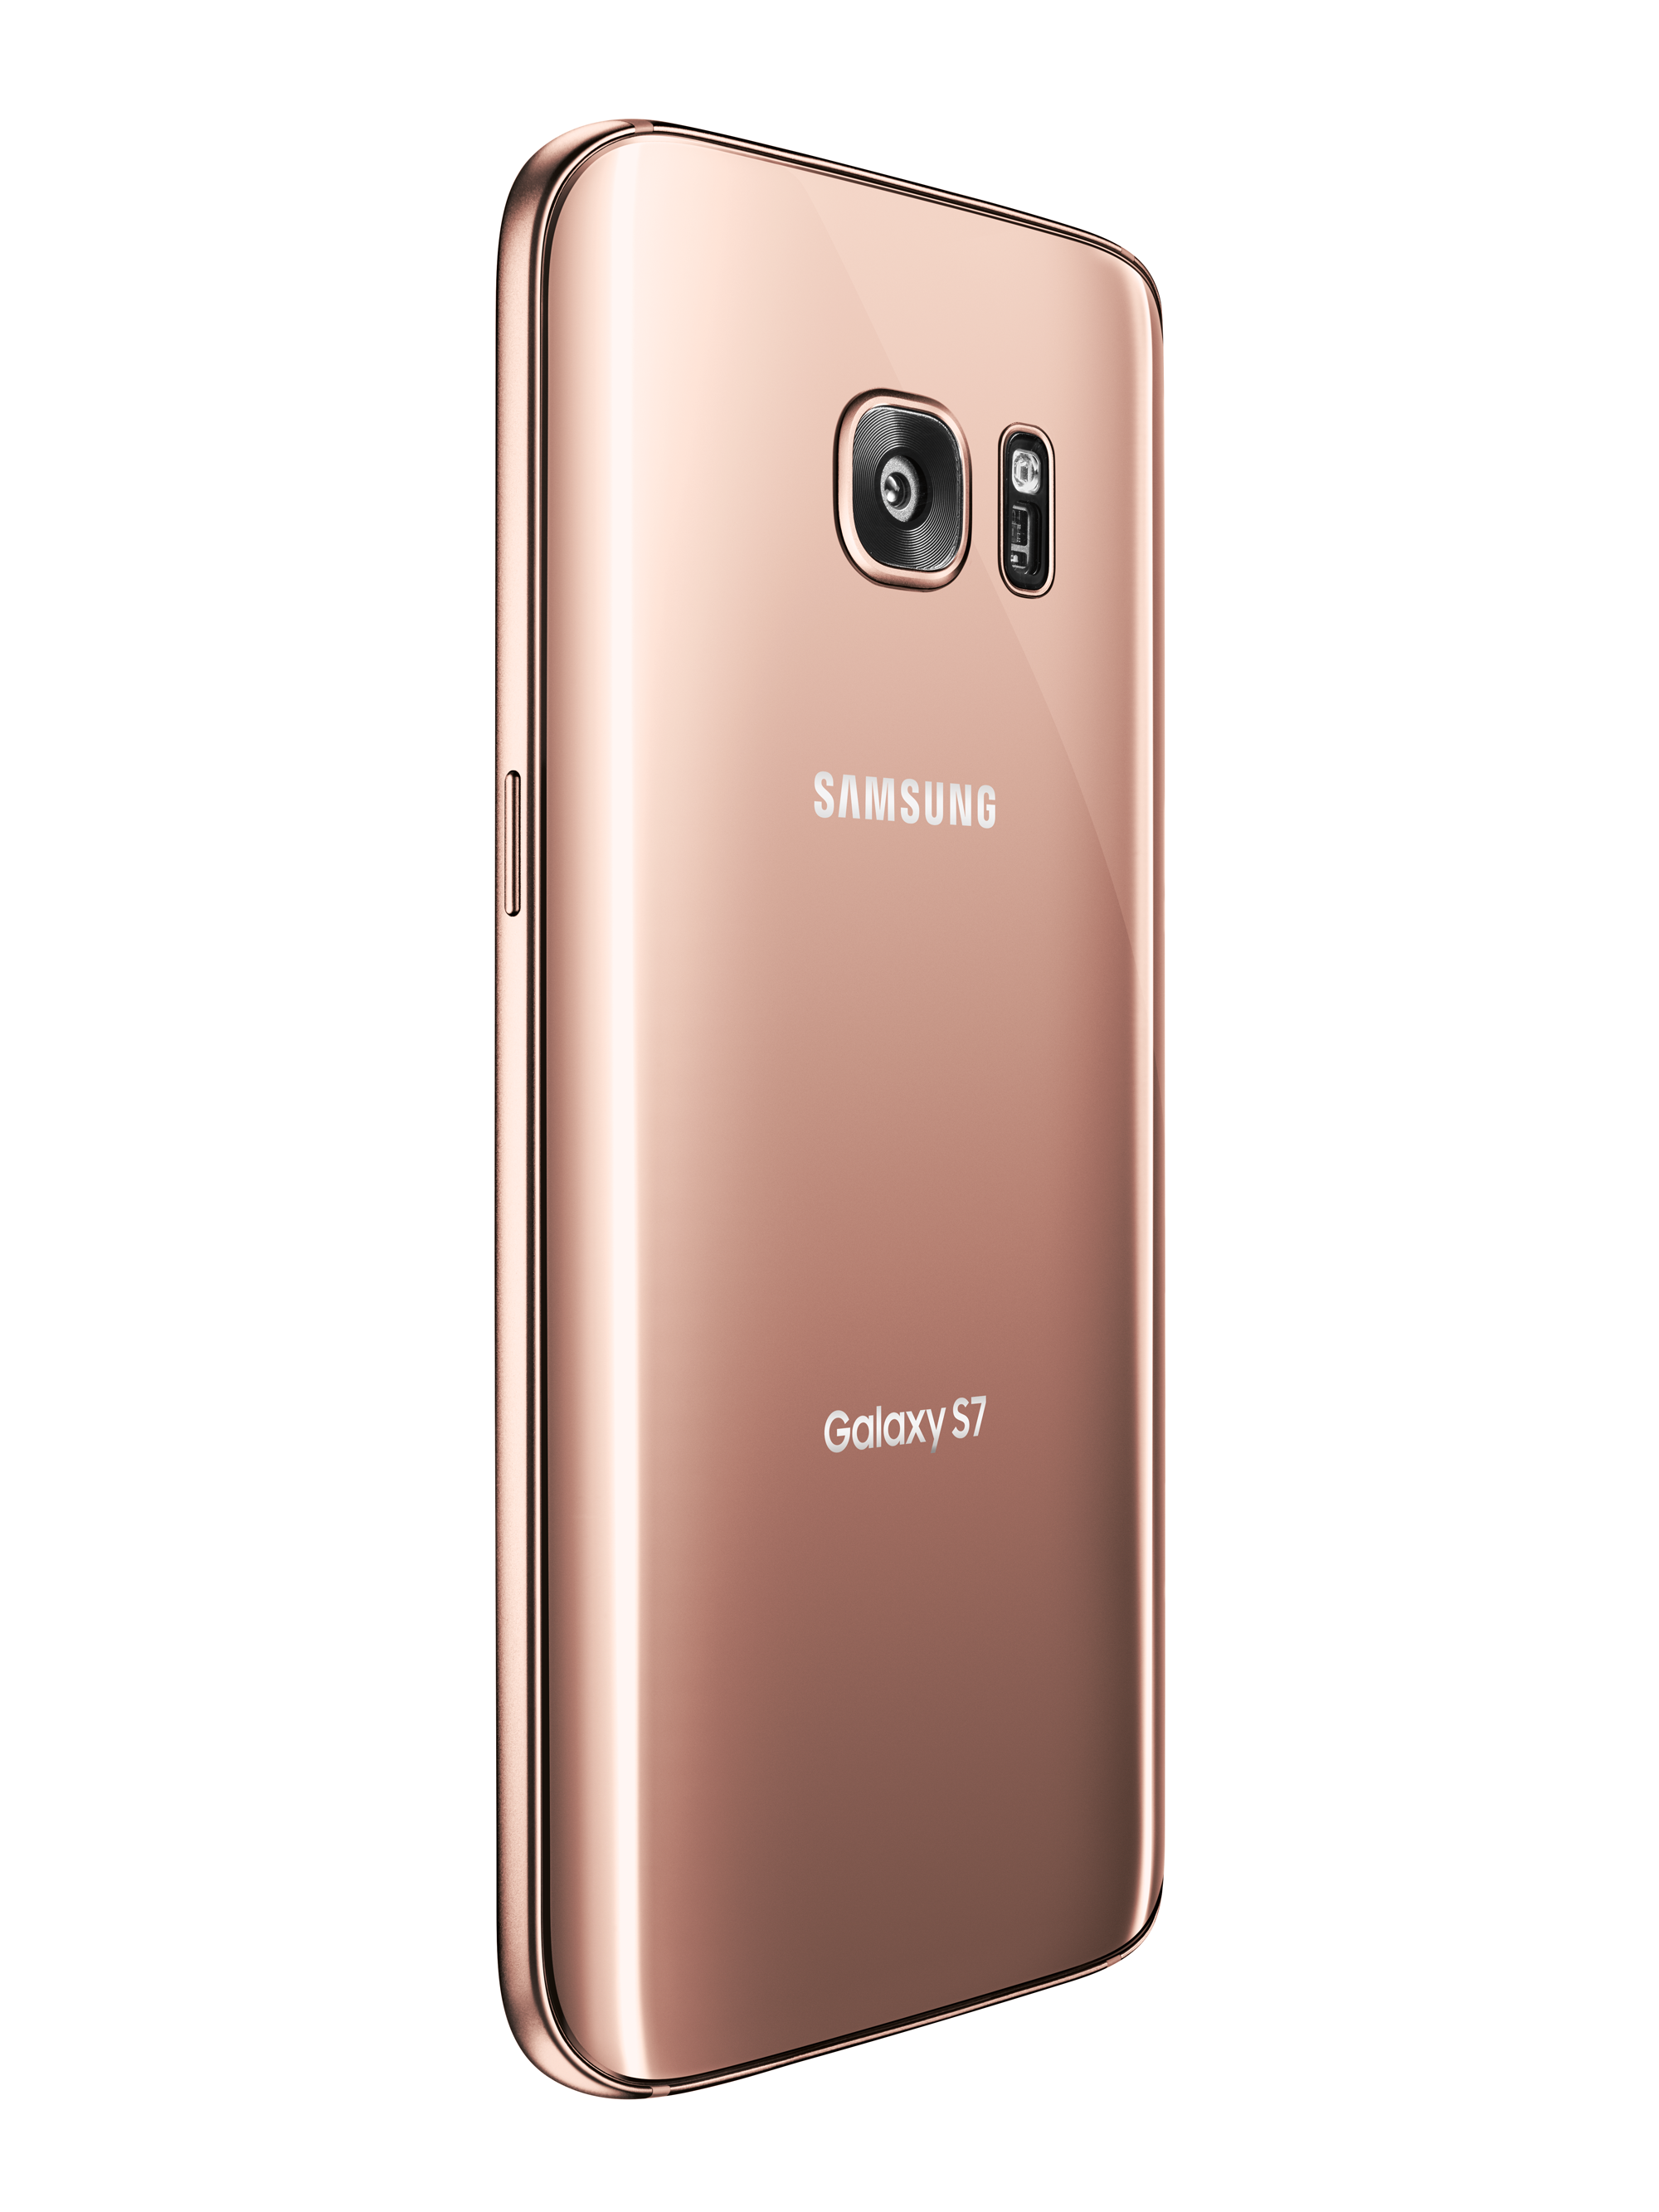 Samsung Galaxy S7 And S7 Edge Now Available In Pink Gold Exclusively At Best Buy Samsung Us Newsroom